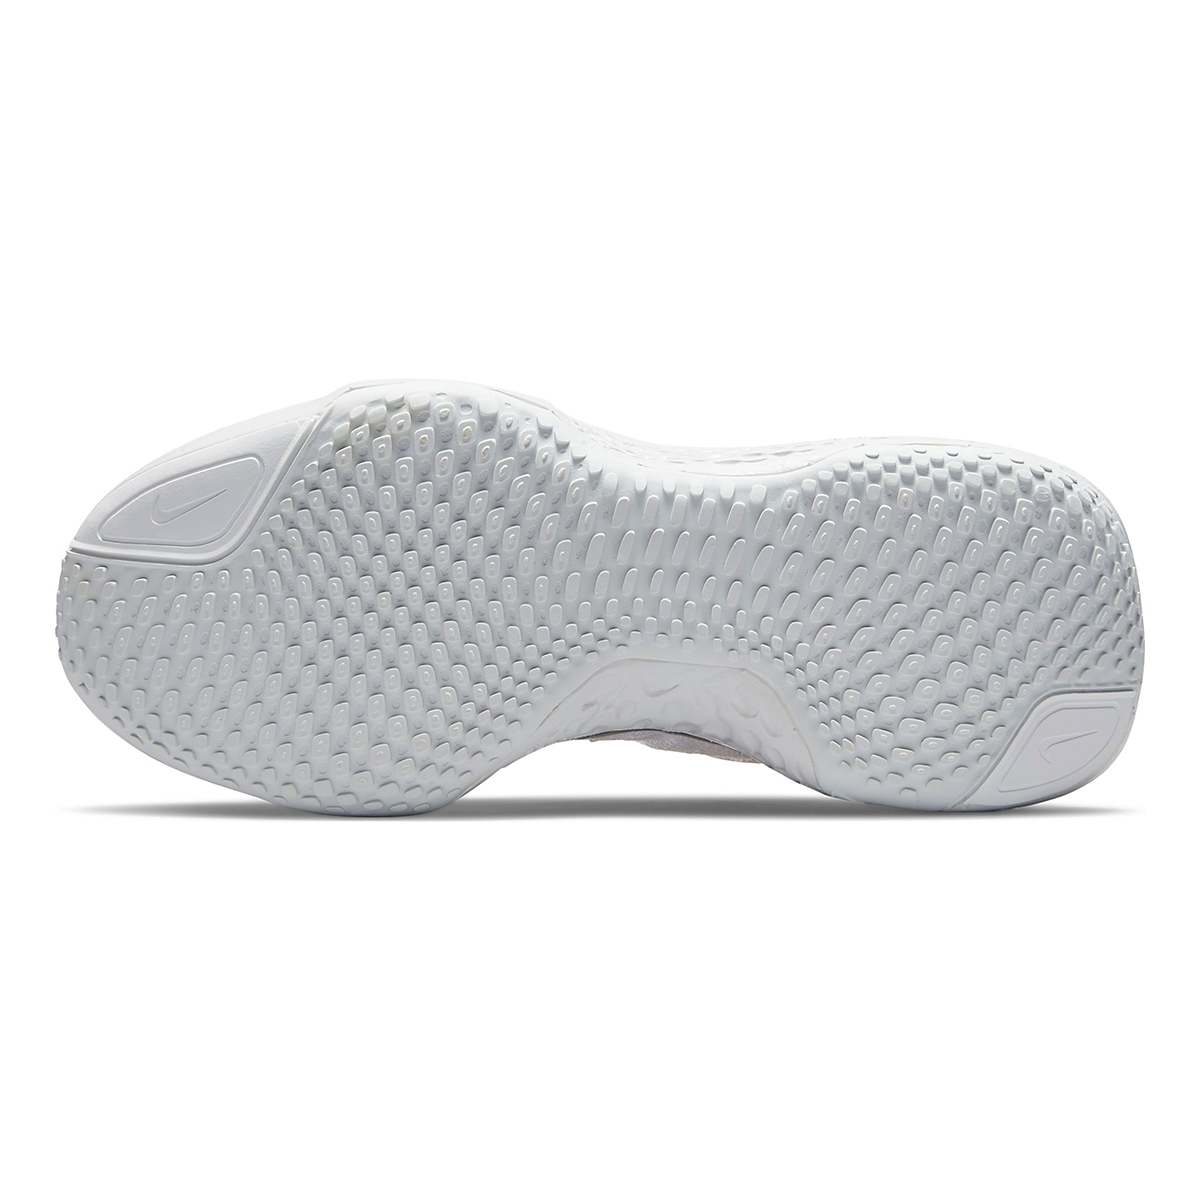 Women's Nike ZoomX Invincible Run Flyknit - Color: White/Metallic Silver/Pure Platinum - Size: 5 - Width: Regular, White/Metallic Silver/Pure Platinum, large, image 7